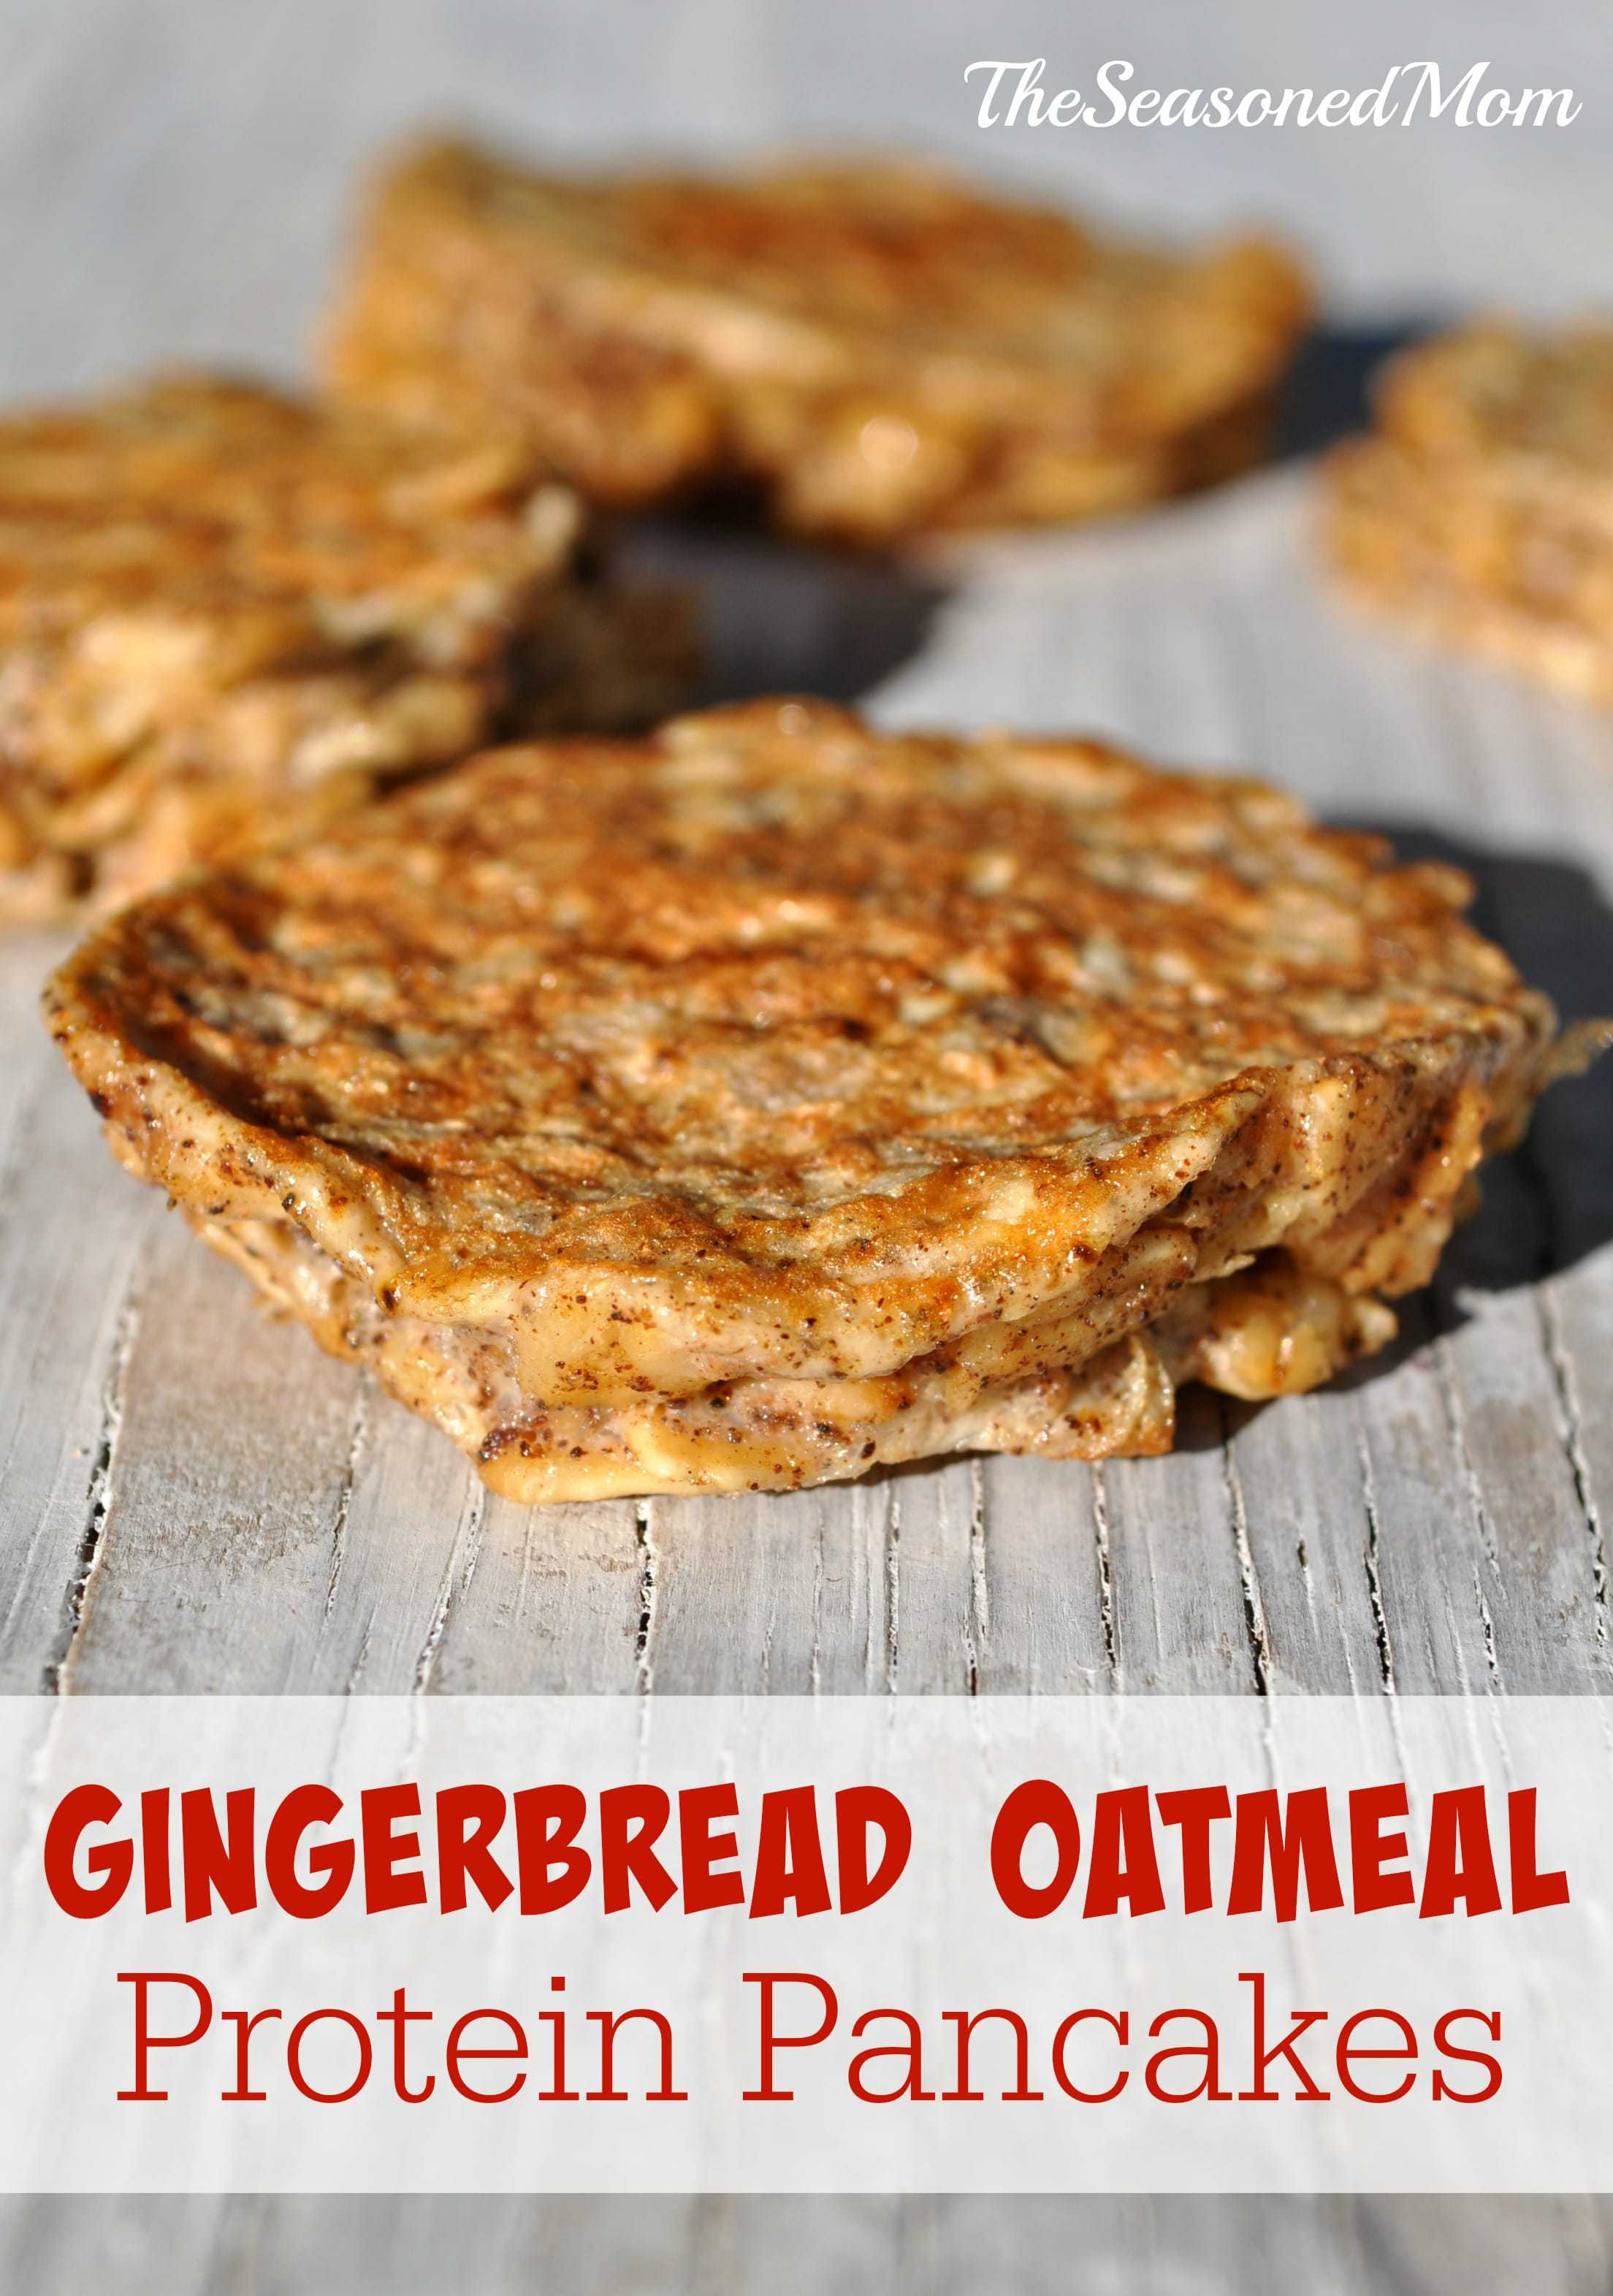 ... with Pure Via: Gingerbread Oatmeal Protein Pancakes - The Seasoned Mom